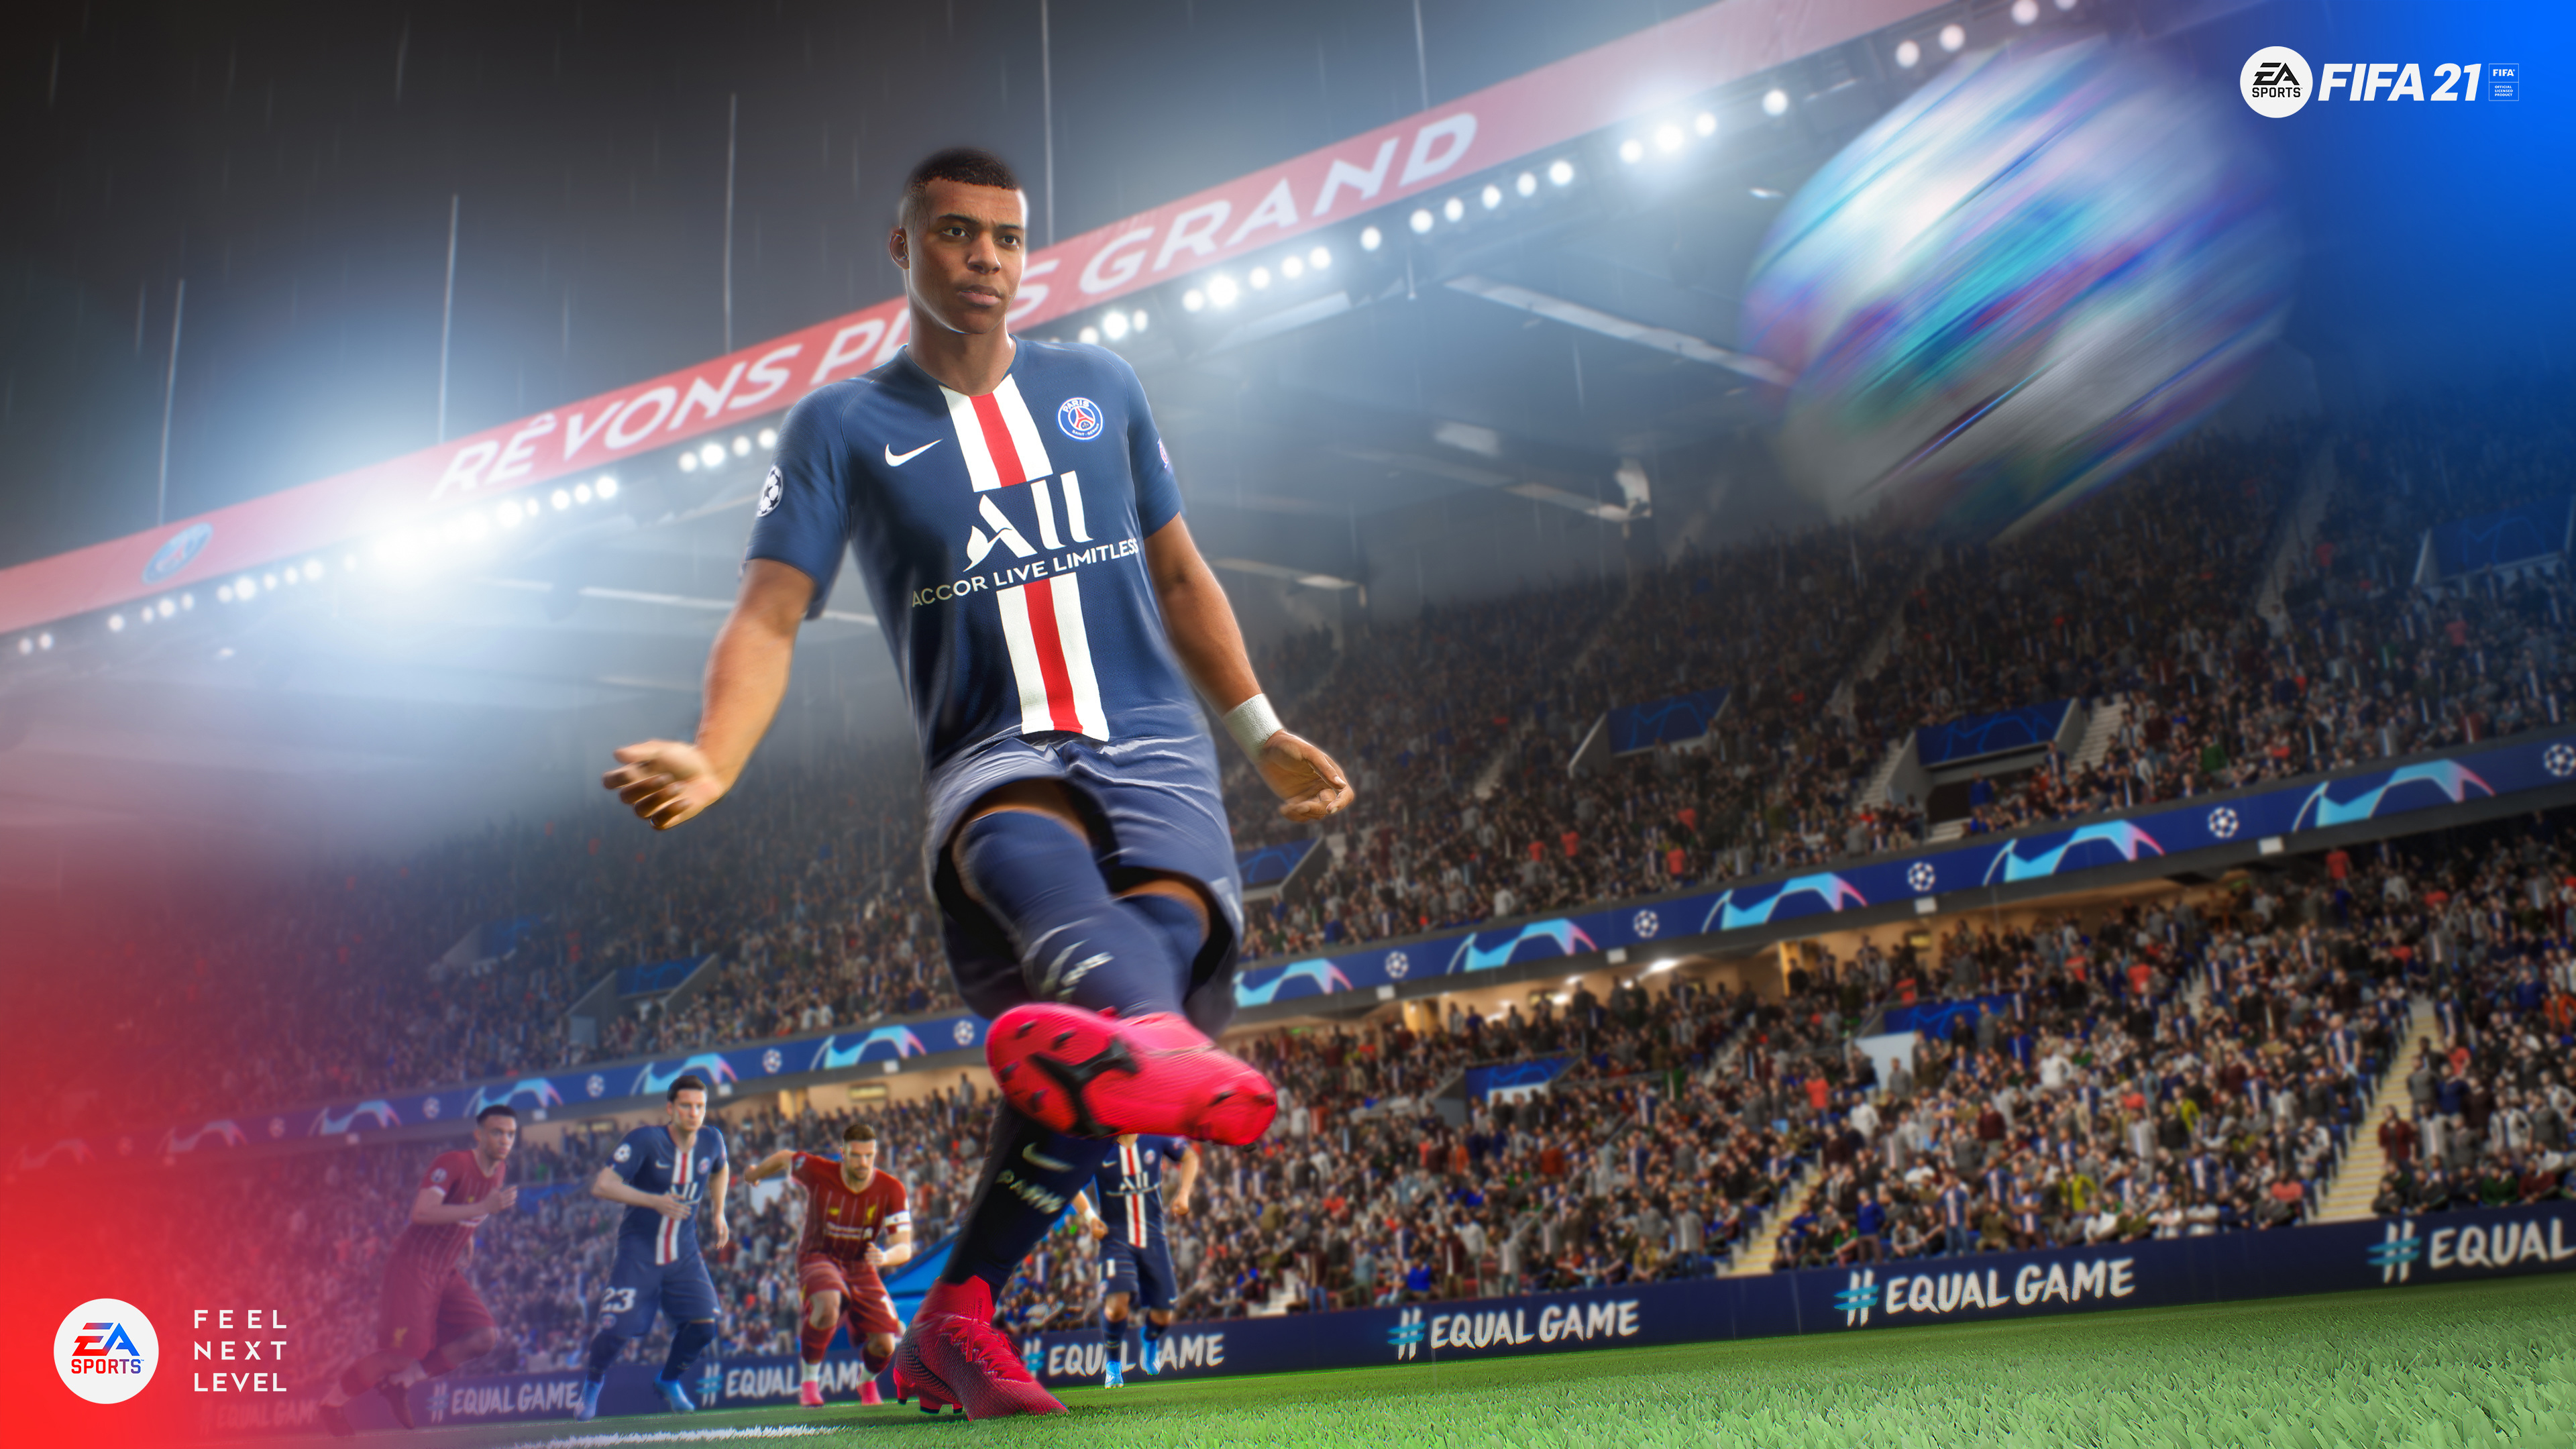 1280x720 FIFA 21 720P Wallpaper, HD Games 4K Wallpapers, Images, Photos and  Background